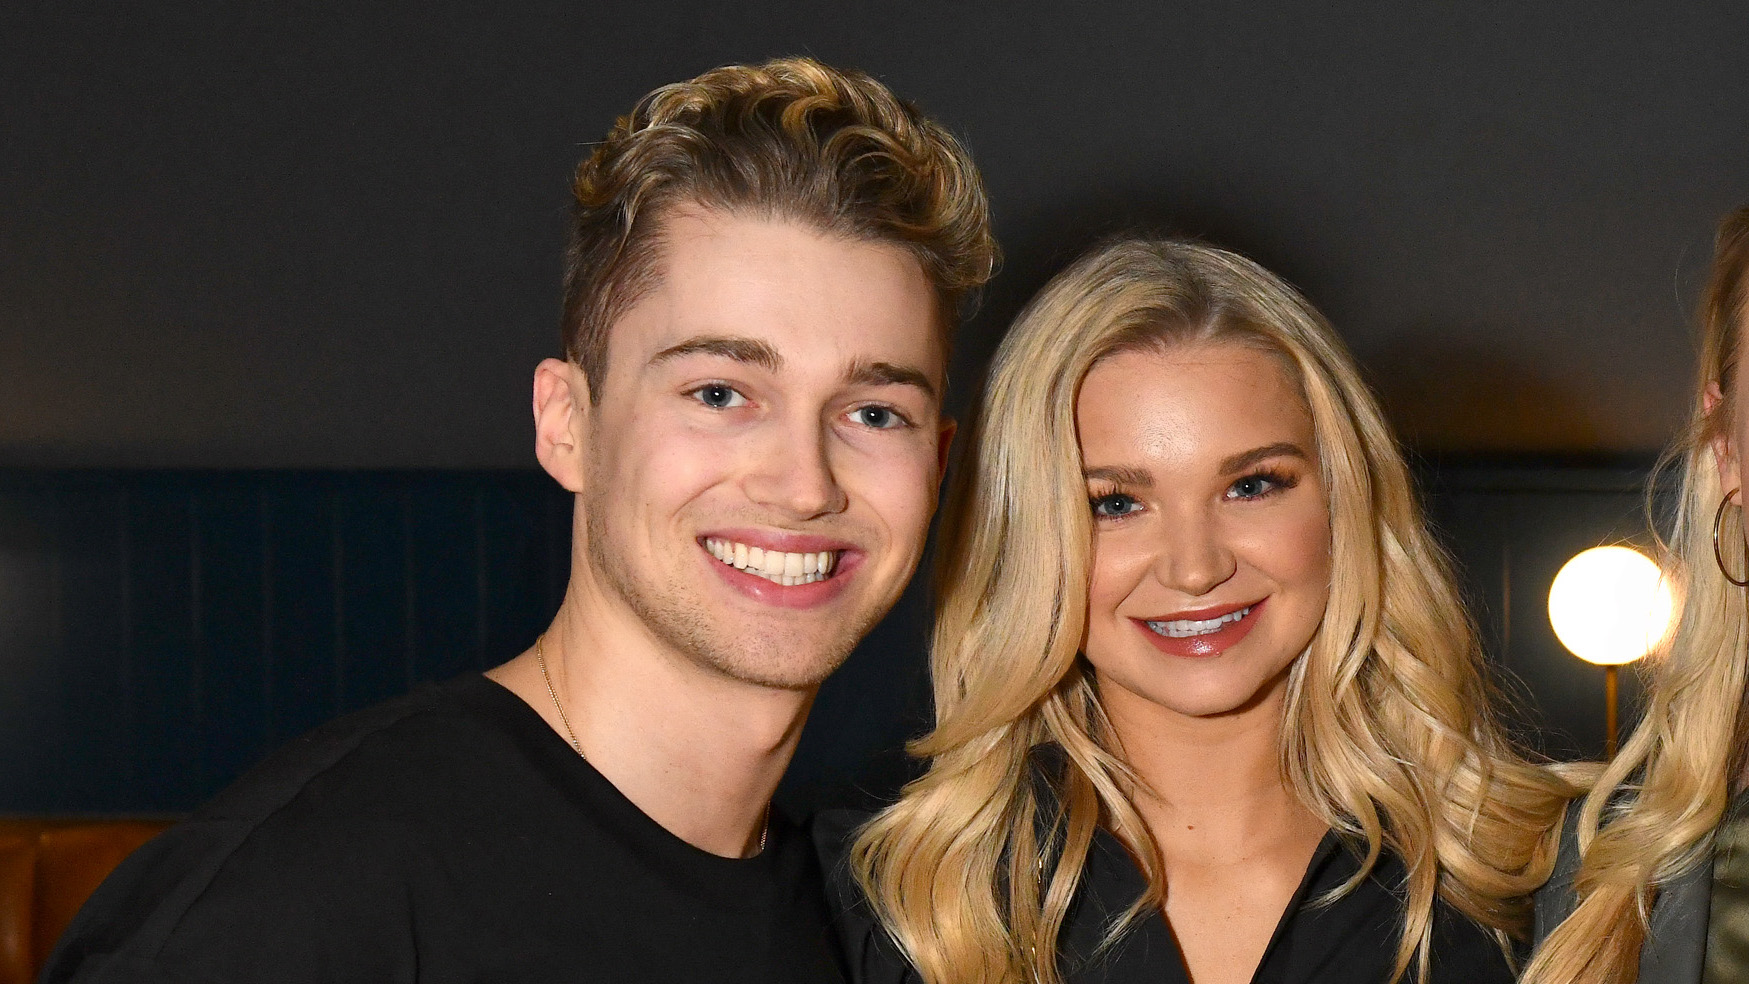 Abbie Quinnen asked if boyfriend AJ Pritchard would still love her after fiery accident